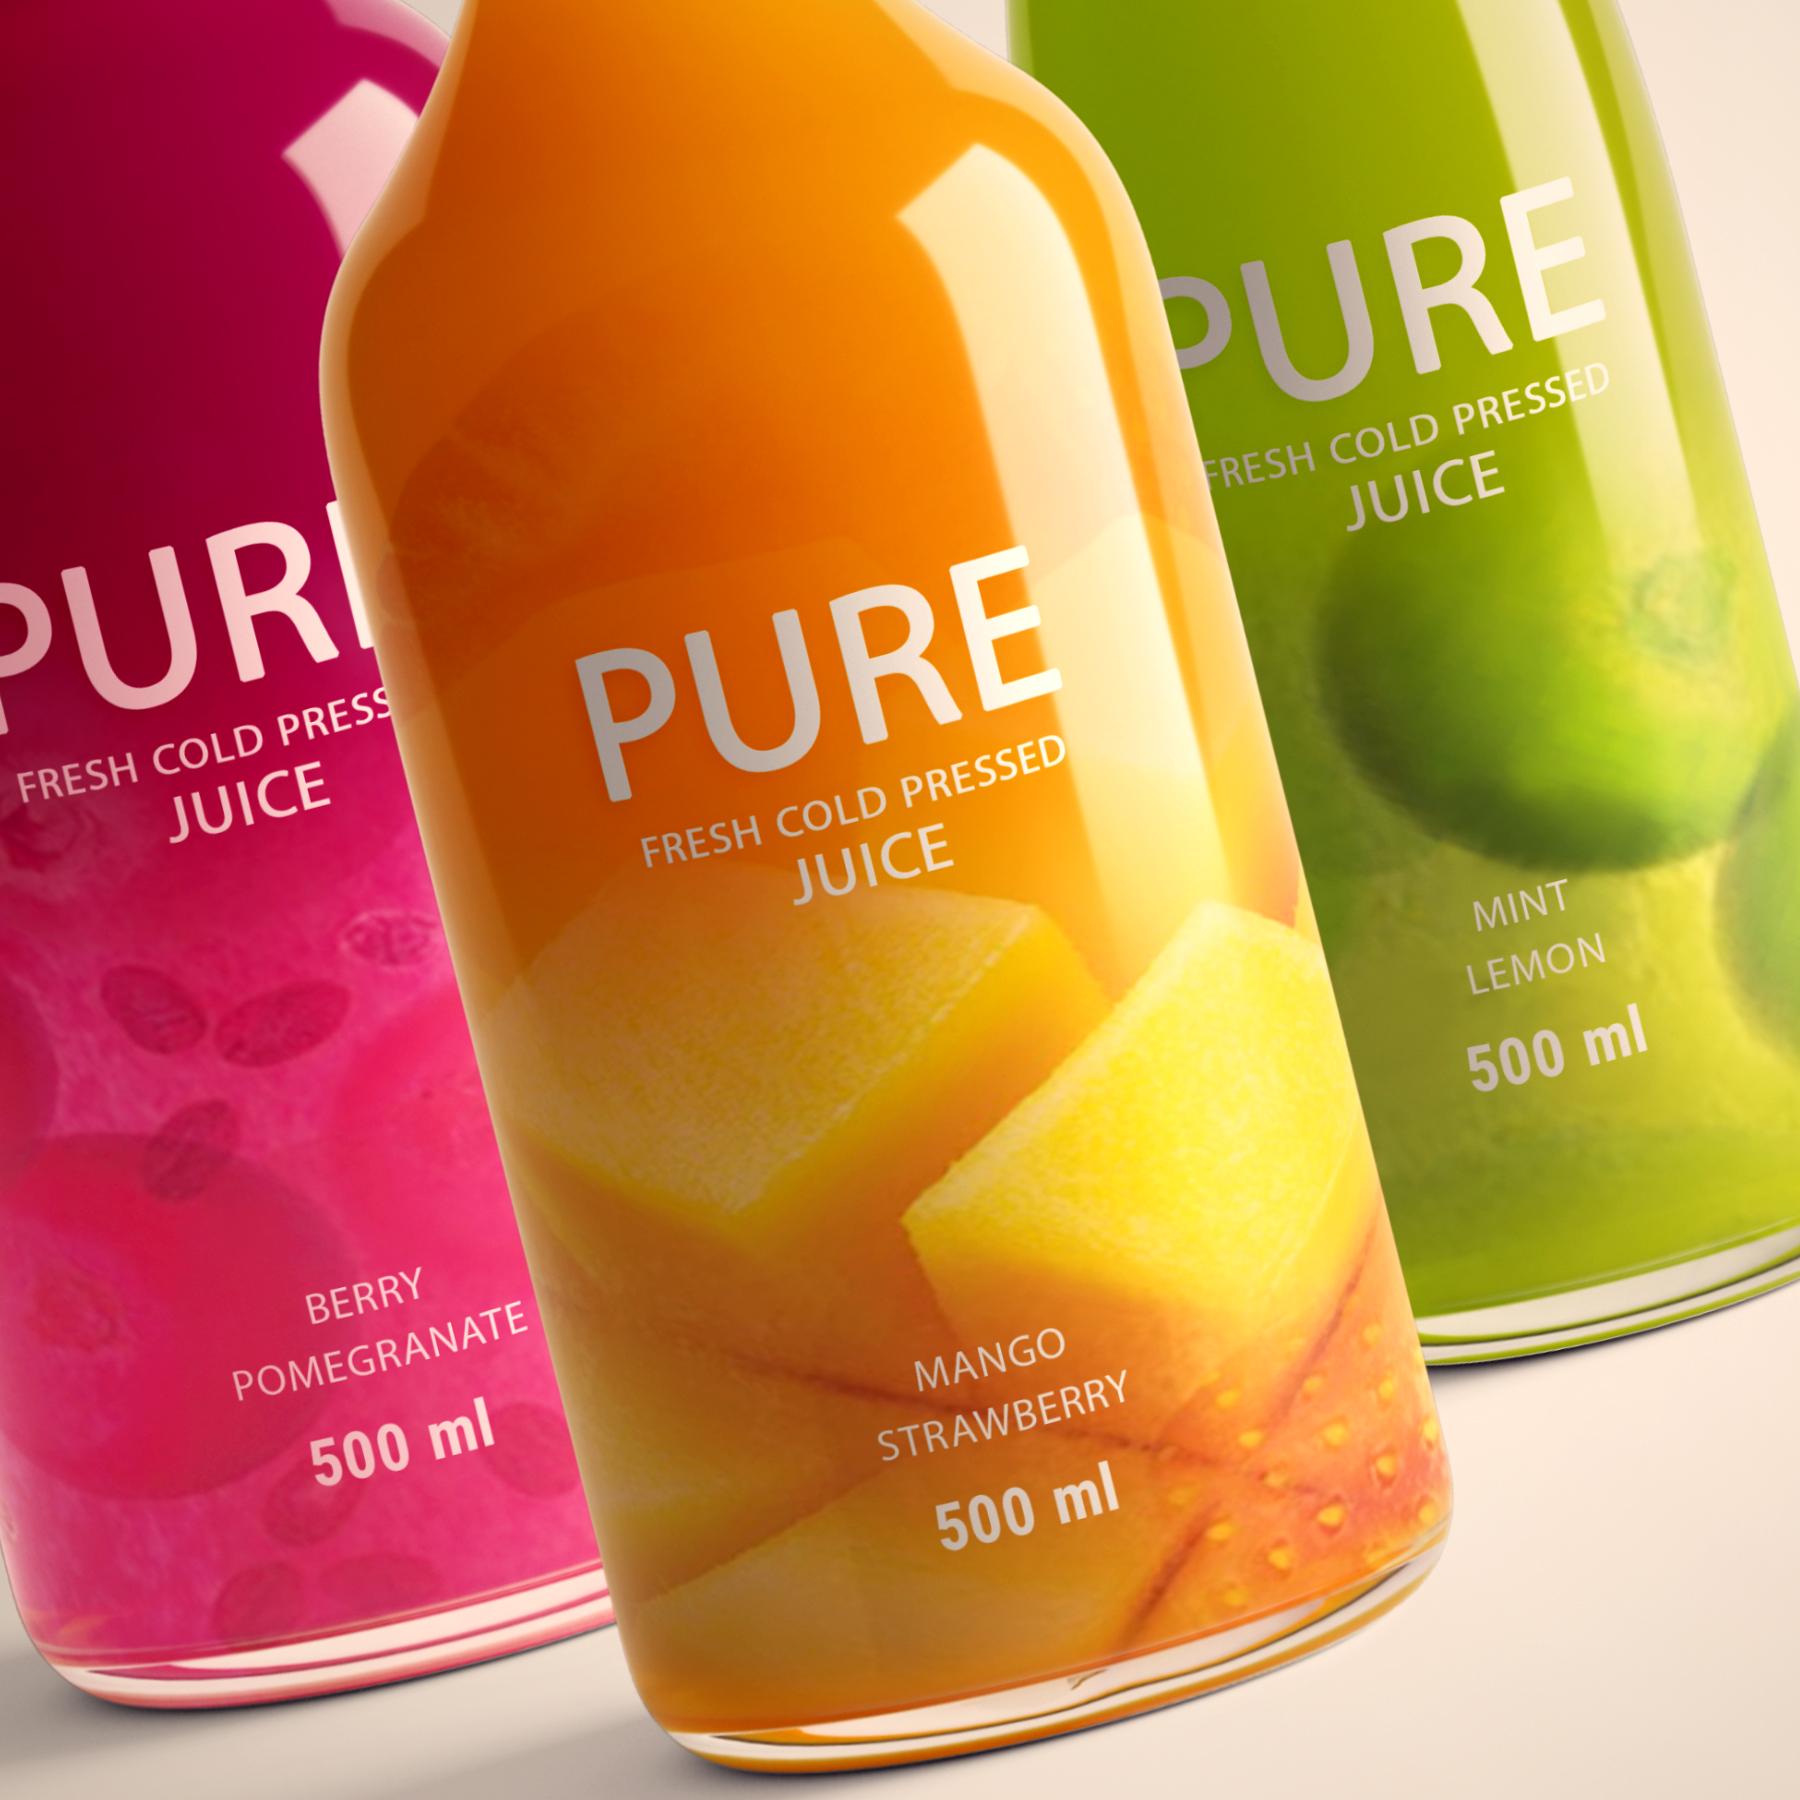 Pure Juice Packaging From Iran